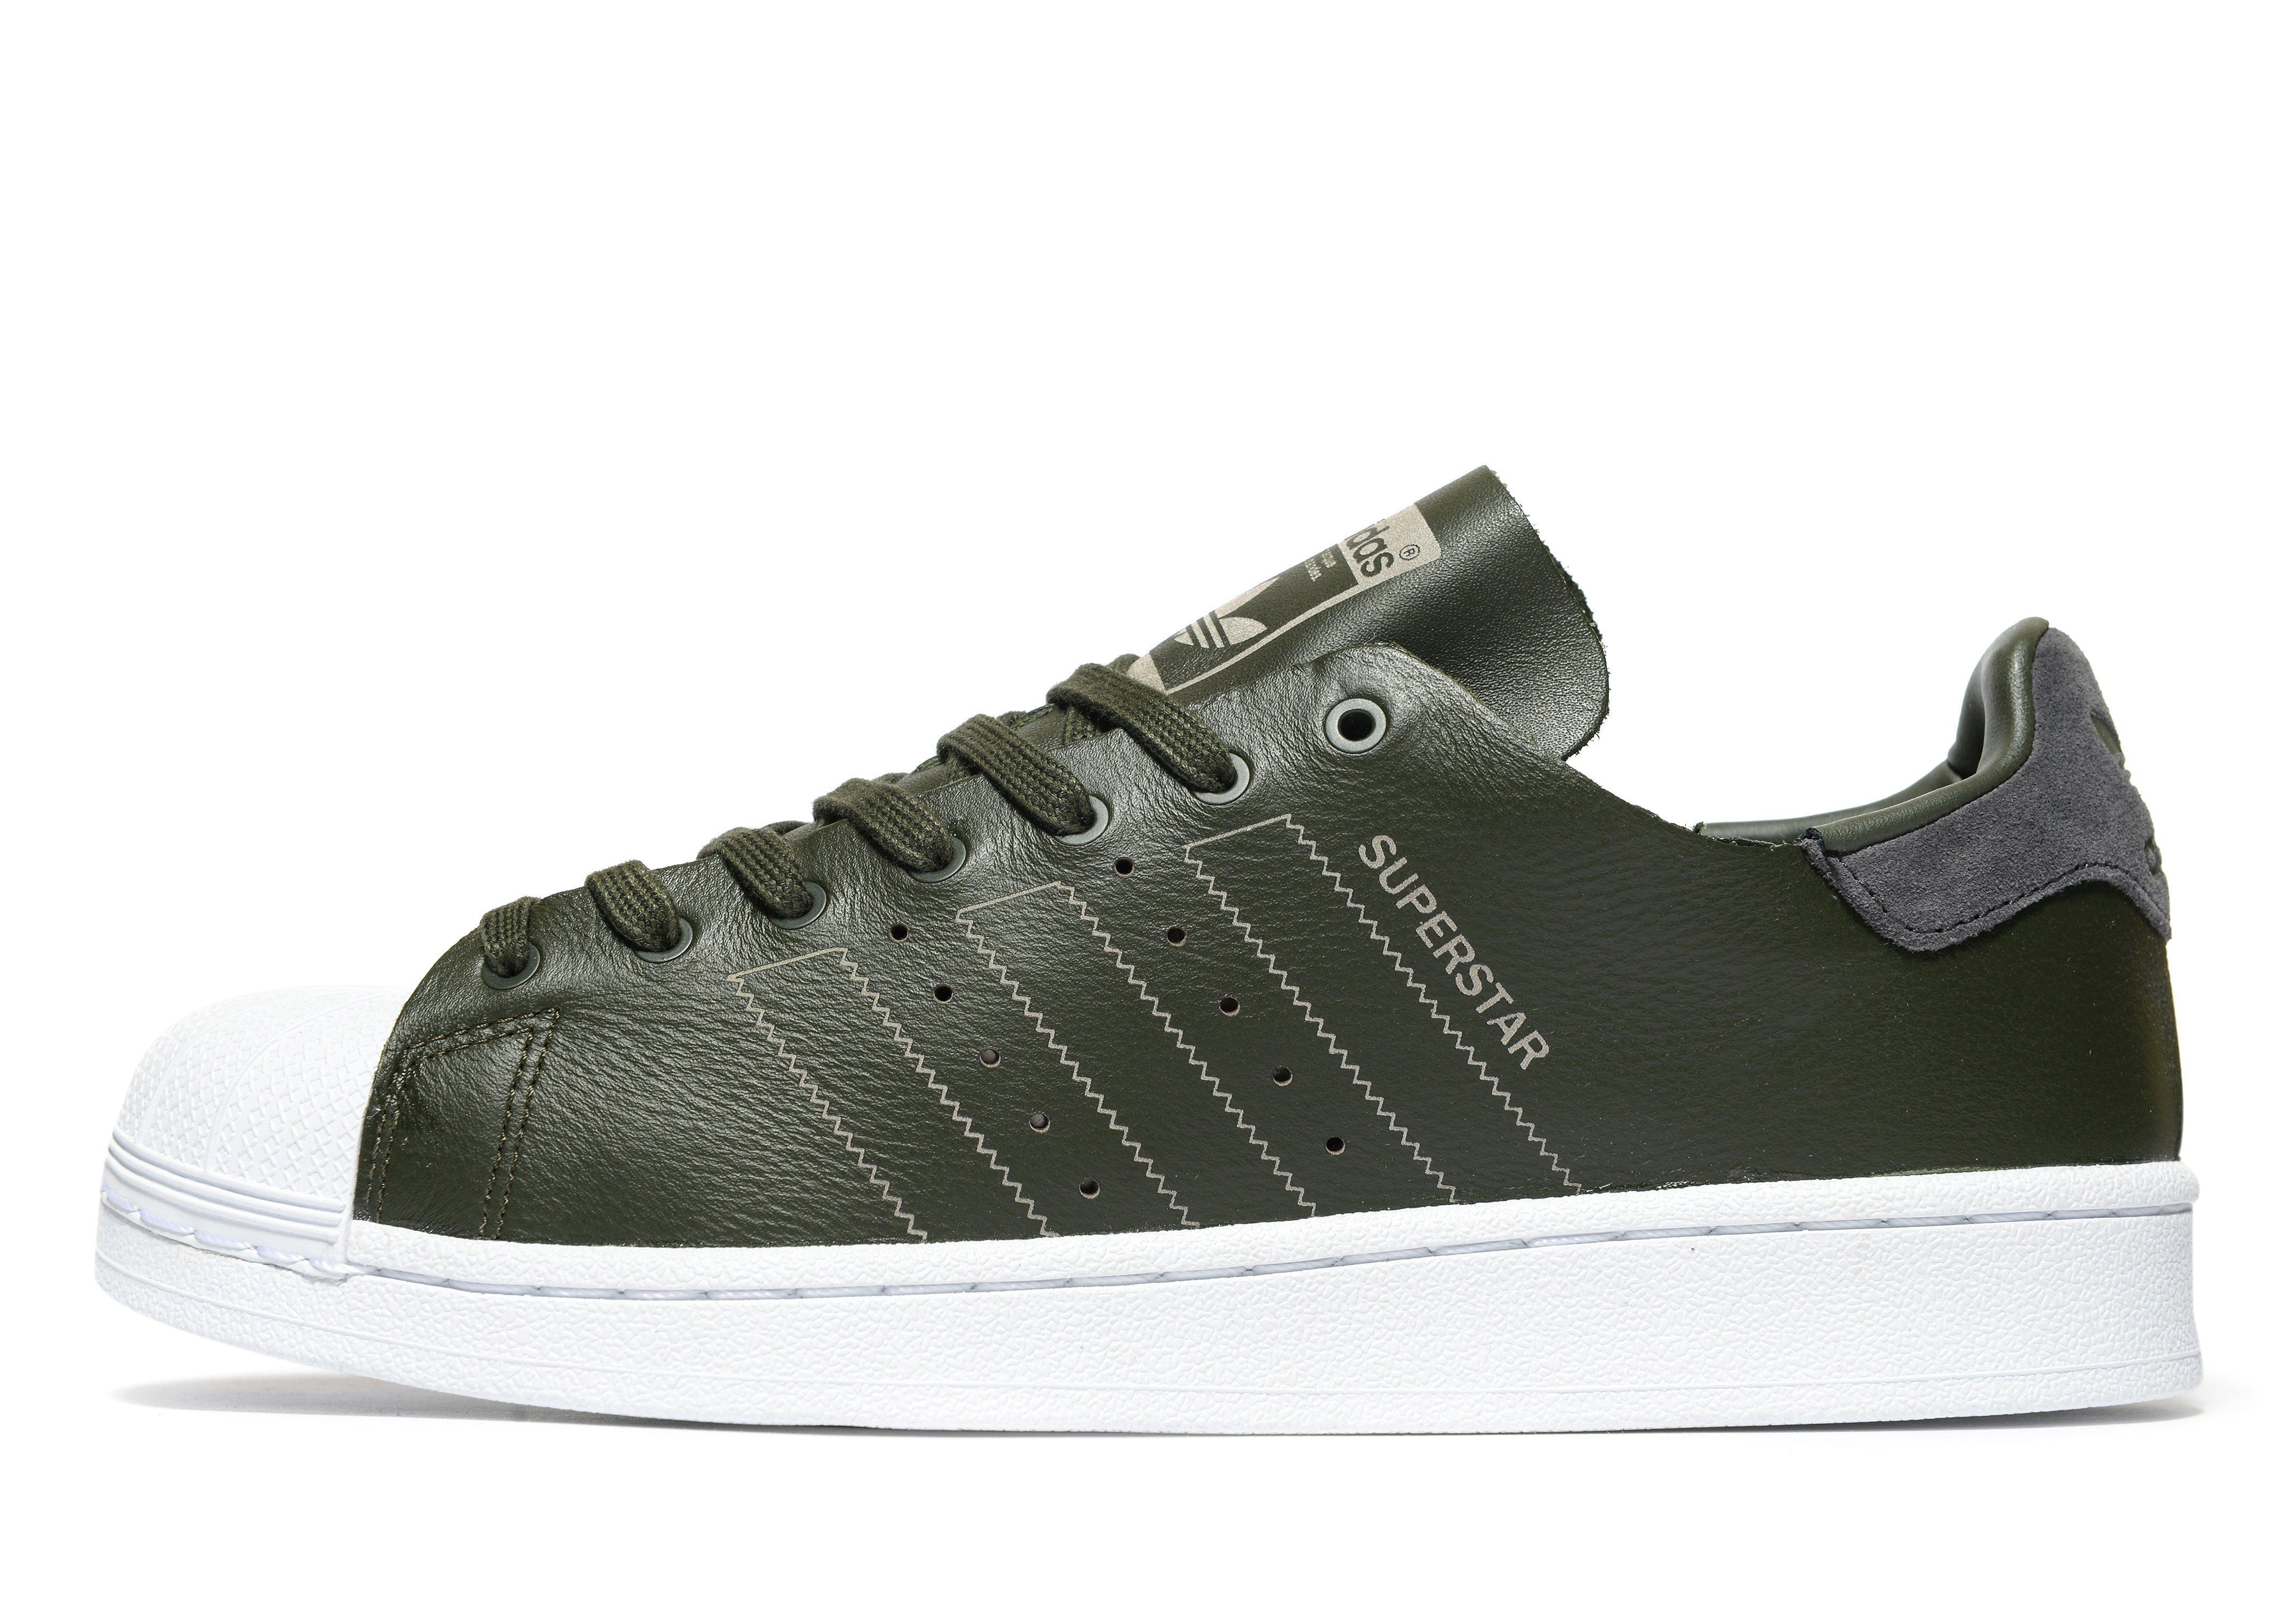 0de1717897e Gallery. Previously sold at  JD Sports · Men s Adidas Superstar ...